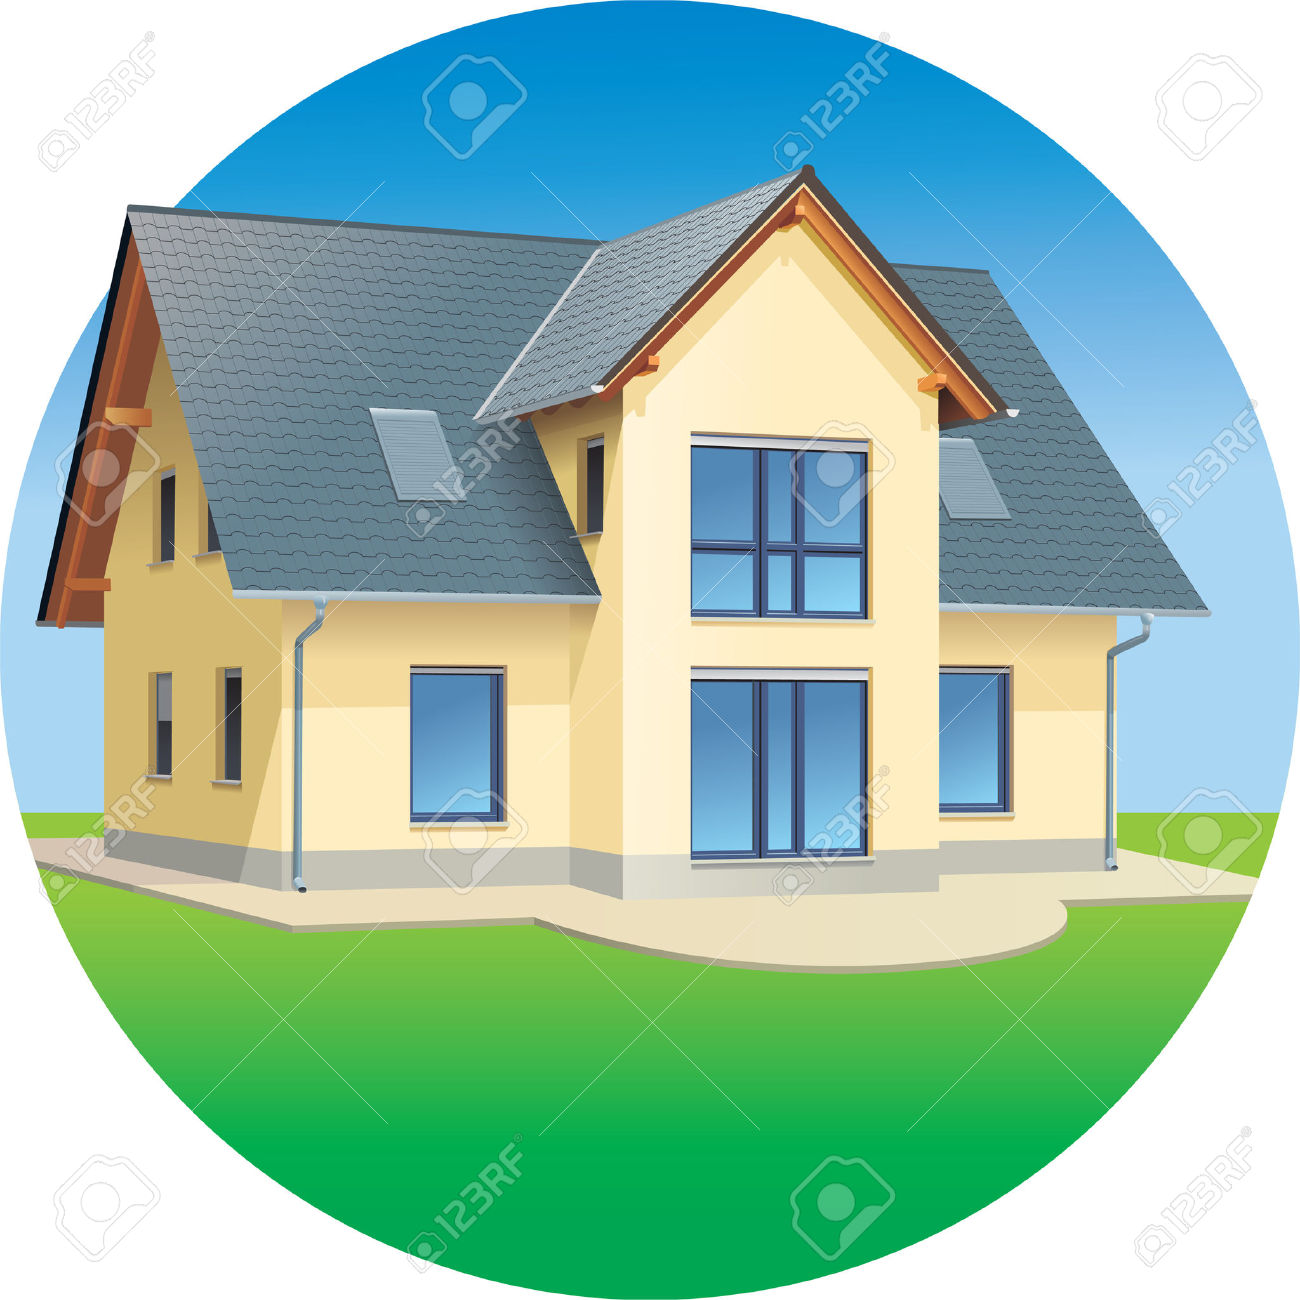 Mansion clipart home Clipart Clip Images home%20clipart Settings